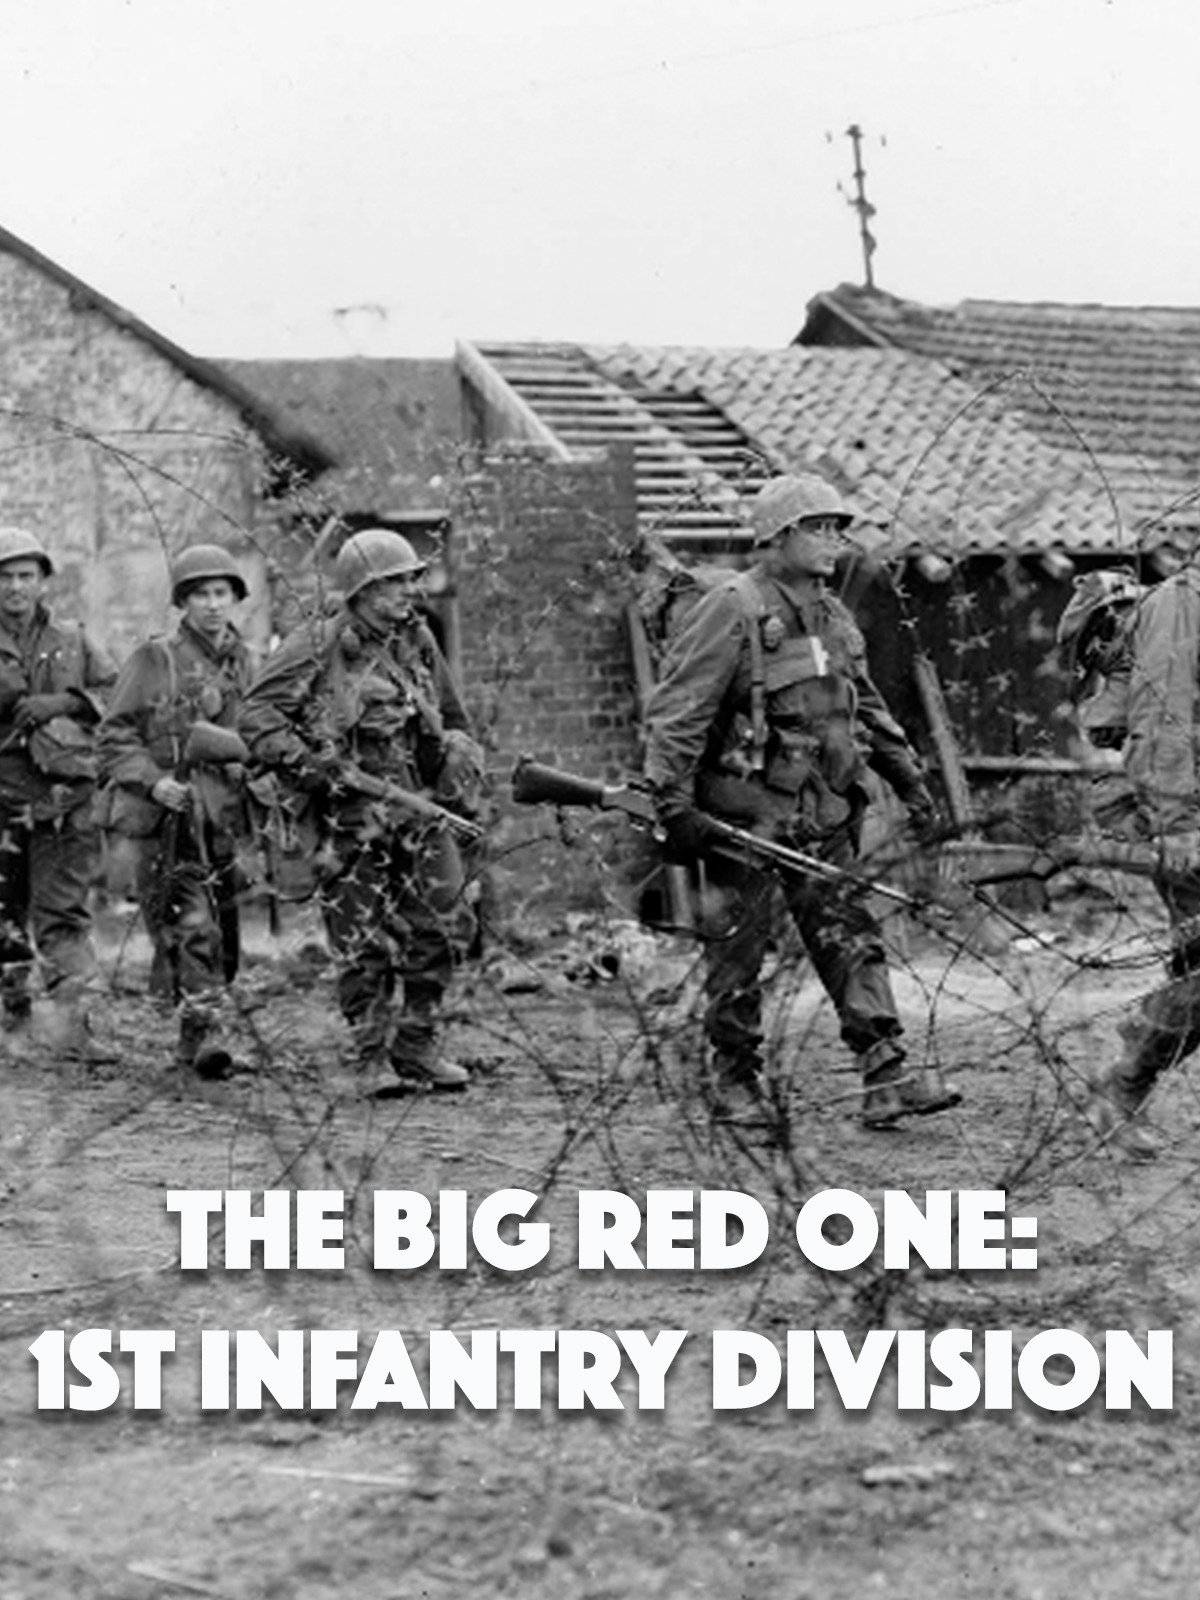 The Big Red One: 1st Infantry Division